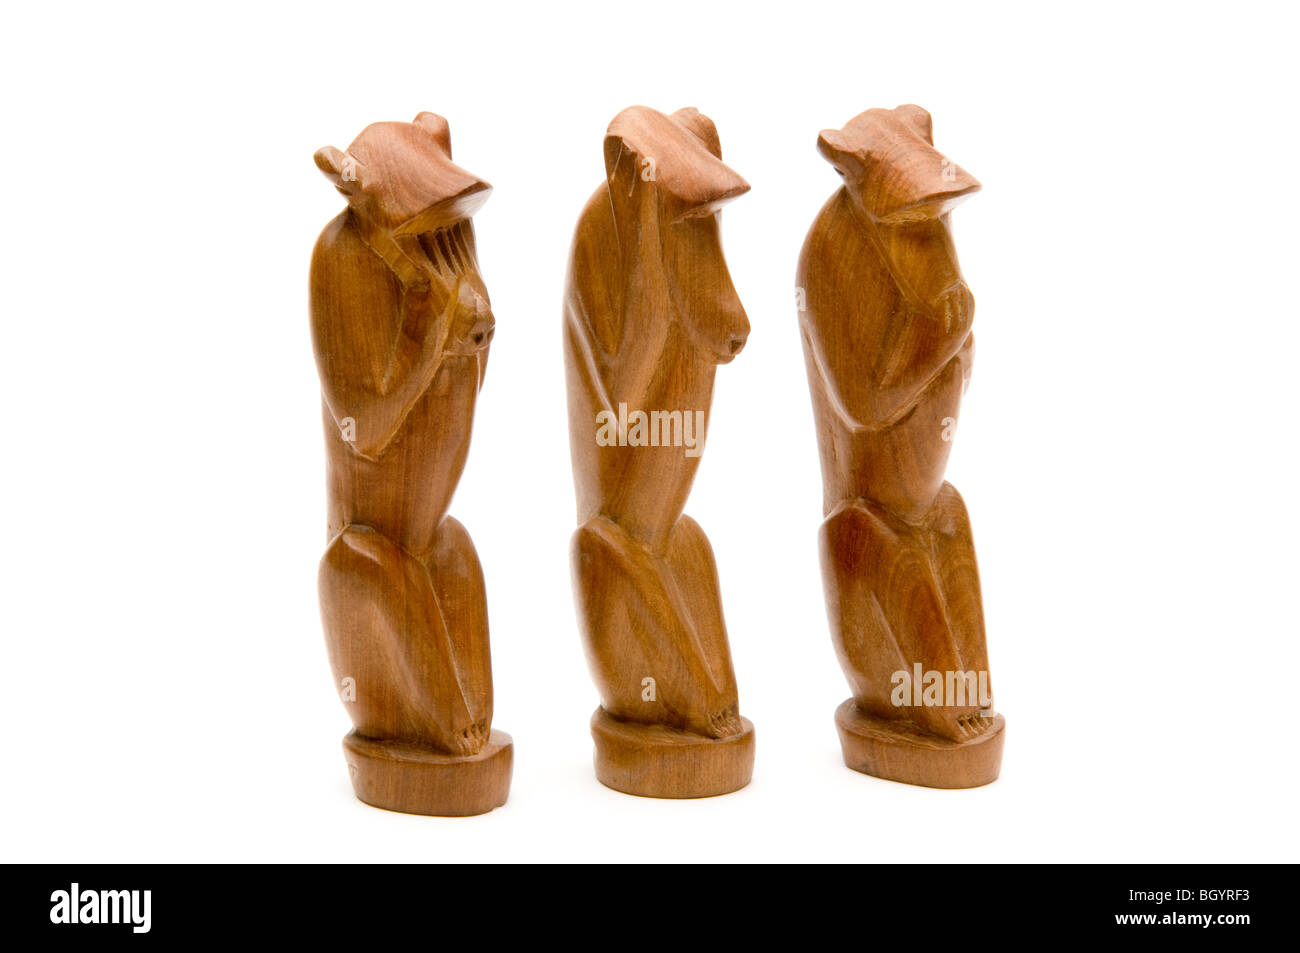 wooden carvings of monkeys see no evil - Stock Image